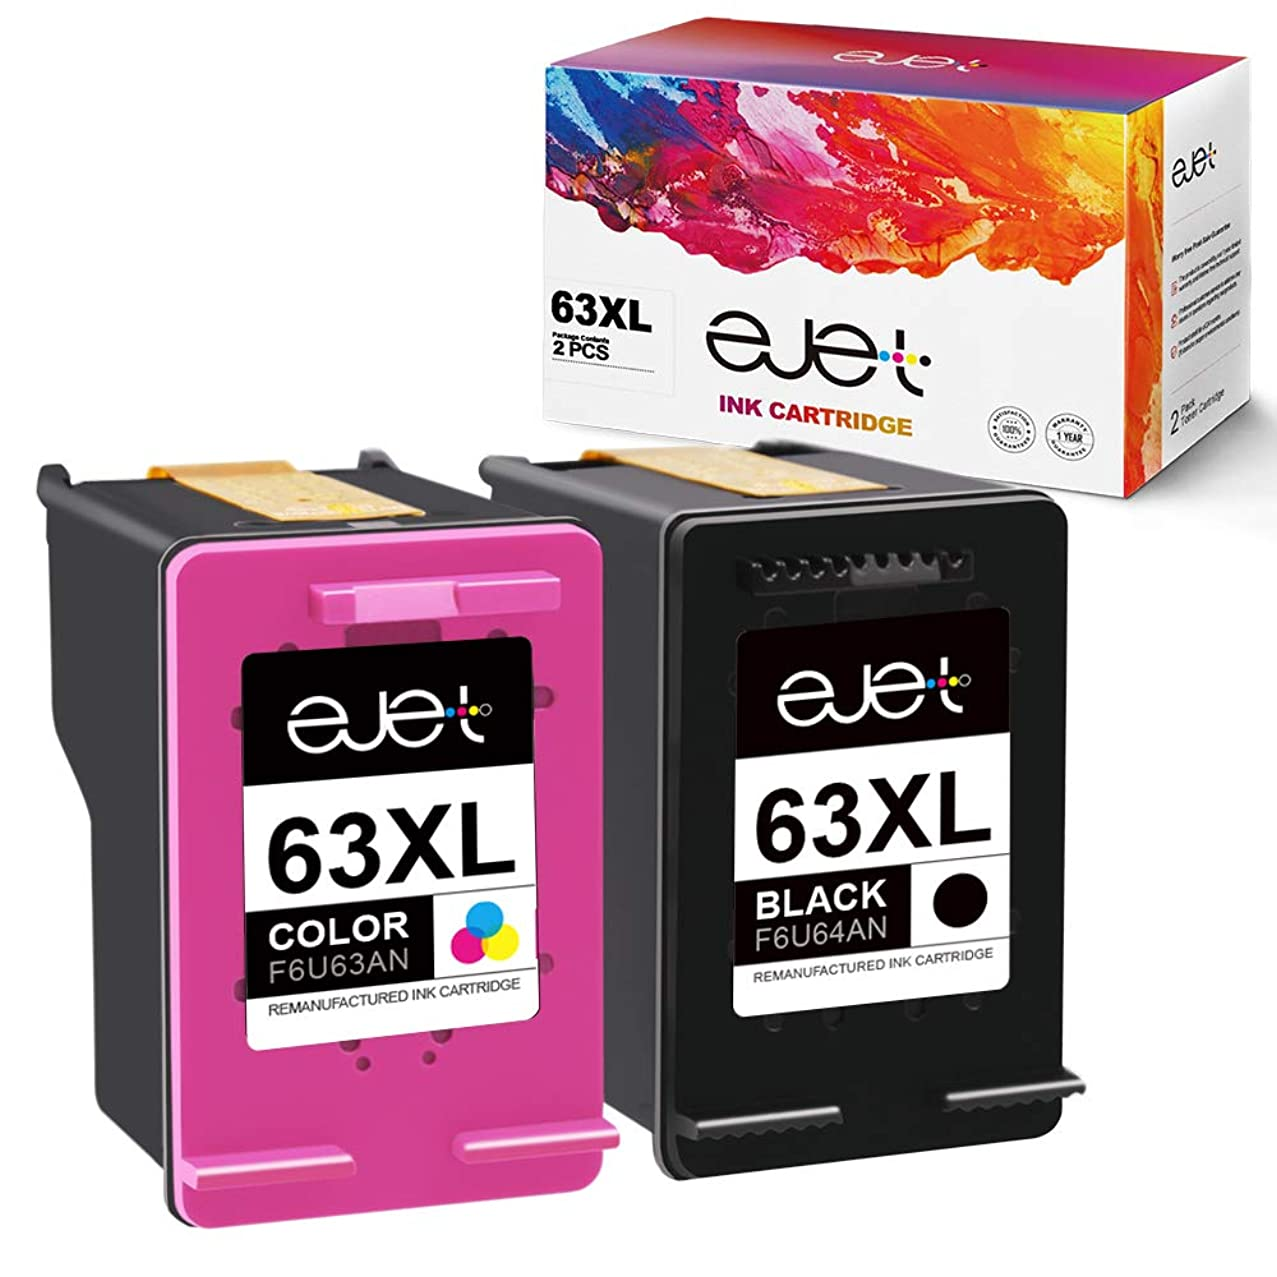 ejet Remanufactured Ink Cartridge Replacement for HP 63XL 63 XL to use with OfficeJet 5255 5258 4650 3830 3833 Envy 4520 4512 4516 DeskJet 1112 2130 2132 3630 3634, Shows Accurate Ink Level, 2 Pack